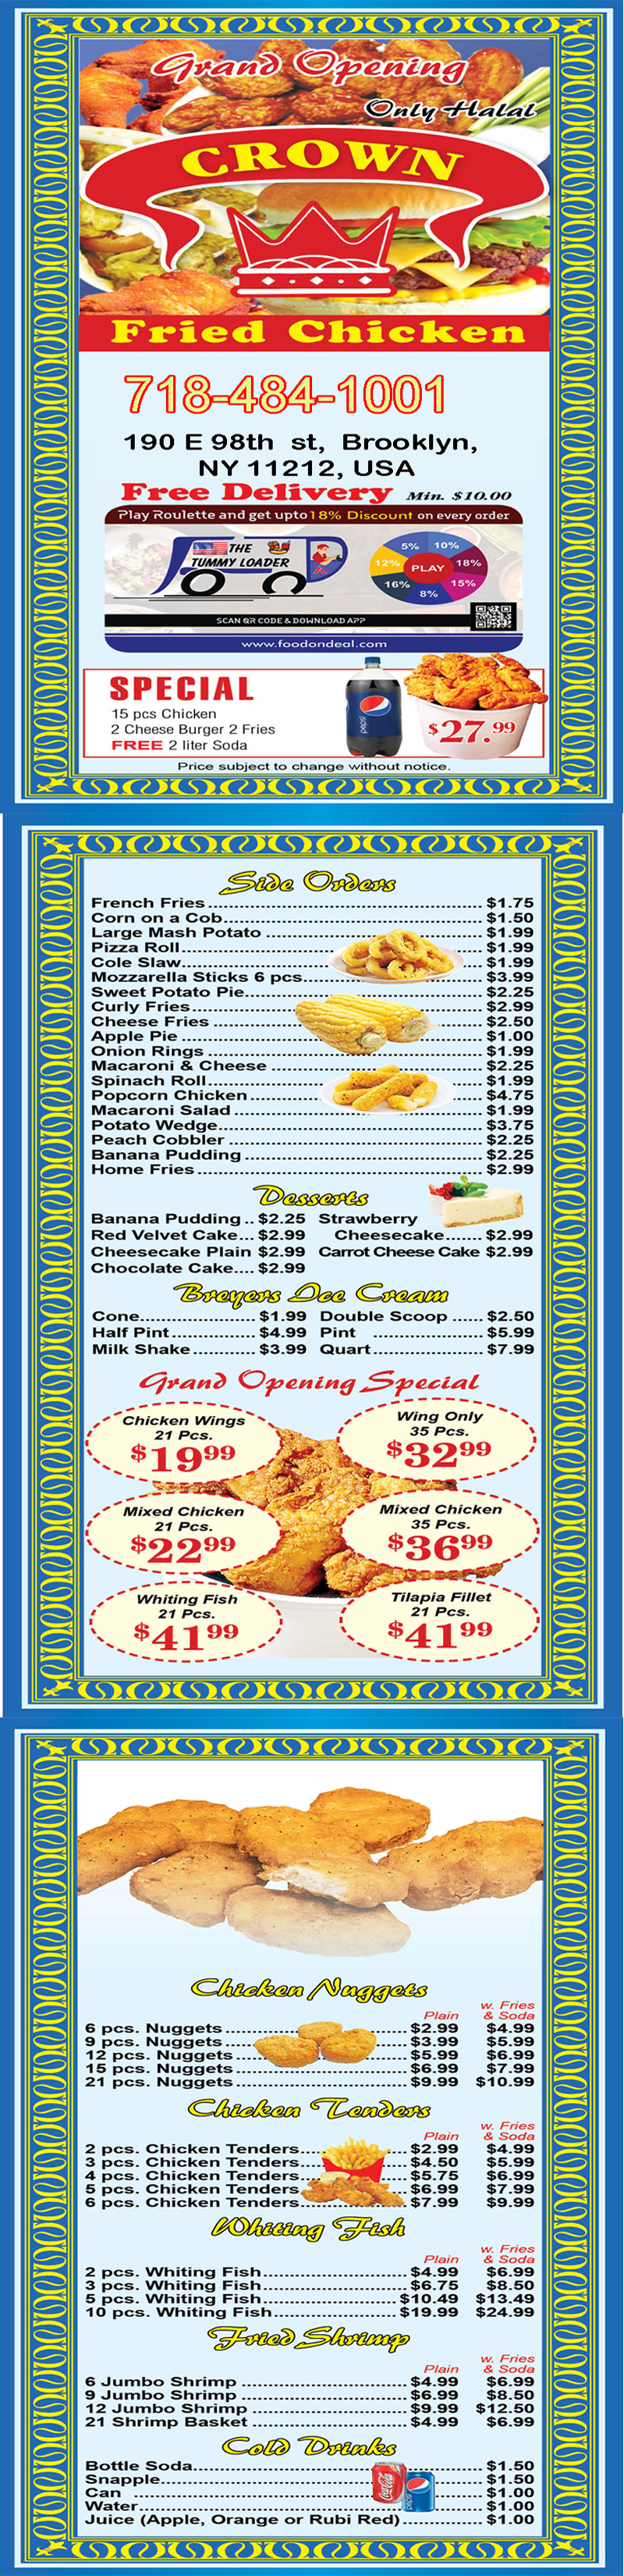 Crown Fried Chicken 190 E 98th St Brooklyn NY 11212 order menu